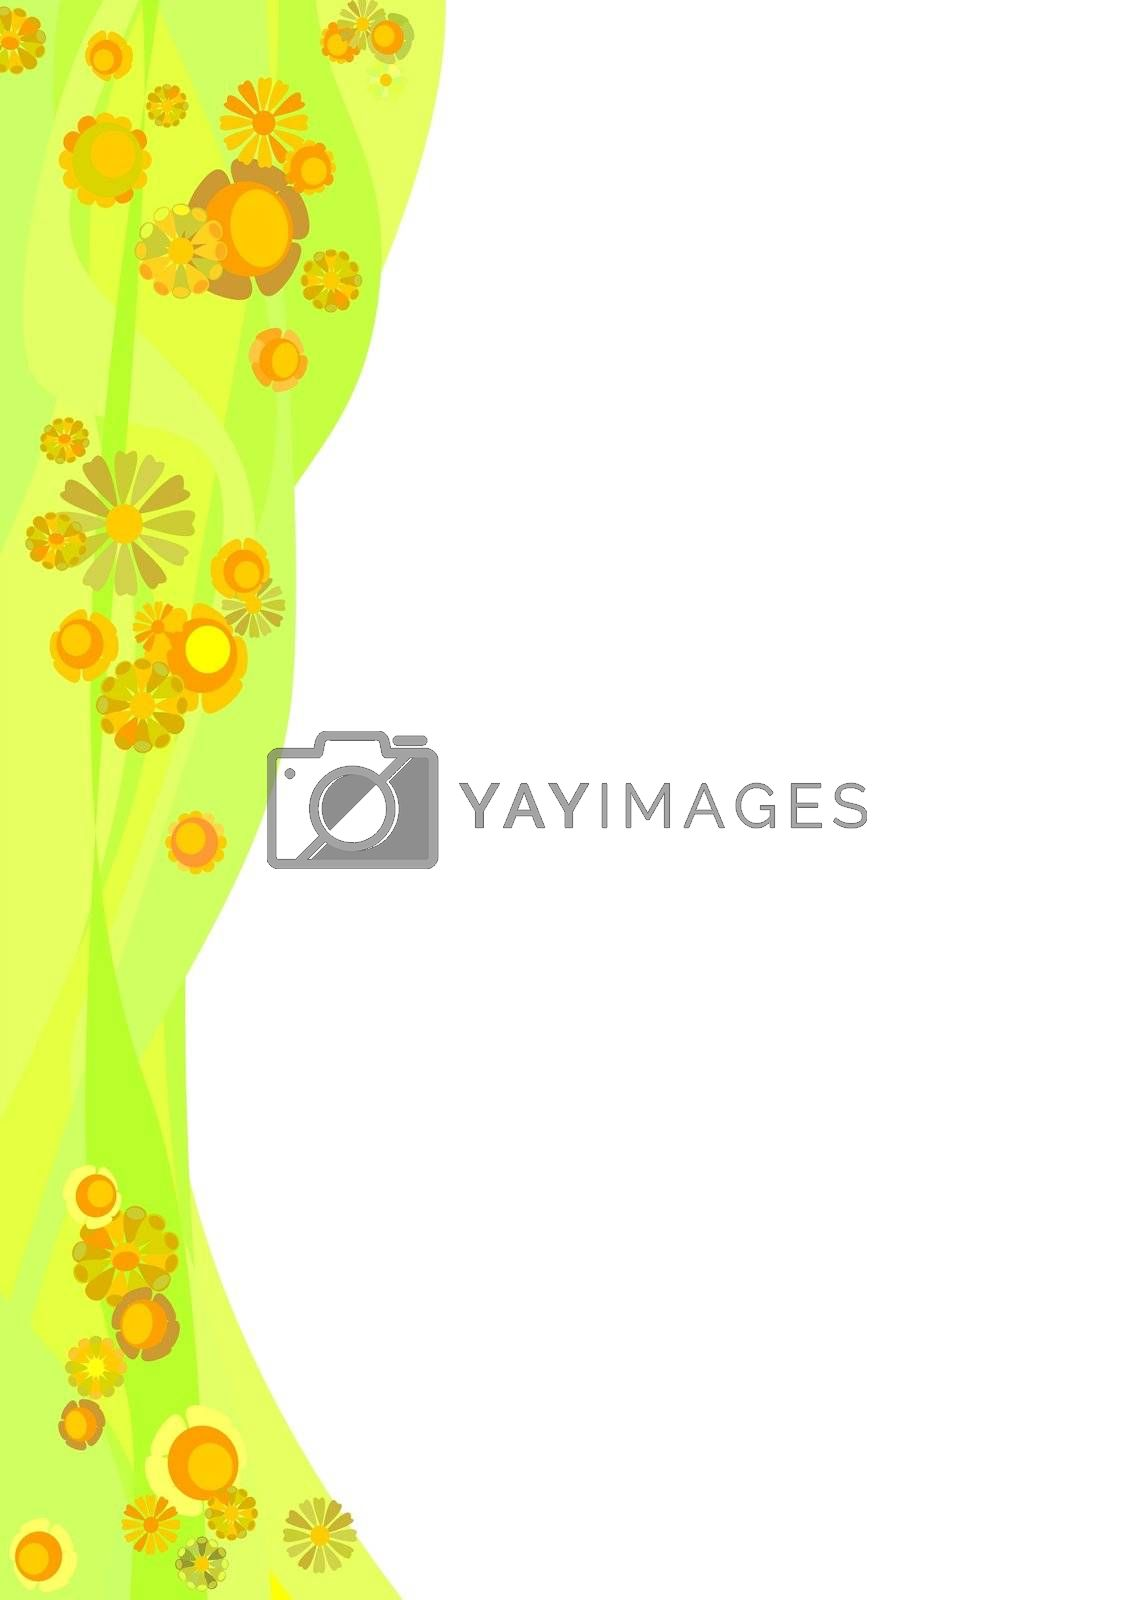 Decorative border, yellow flowers on green